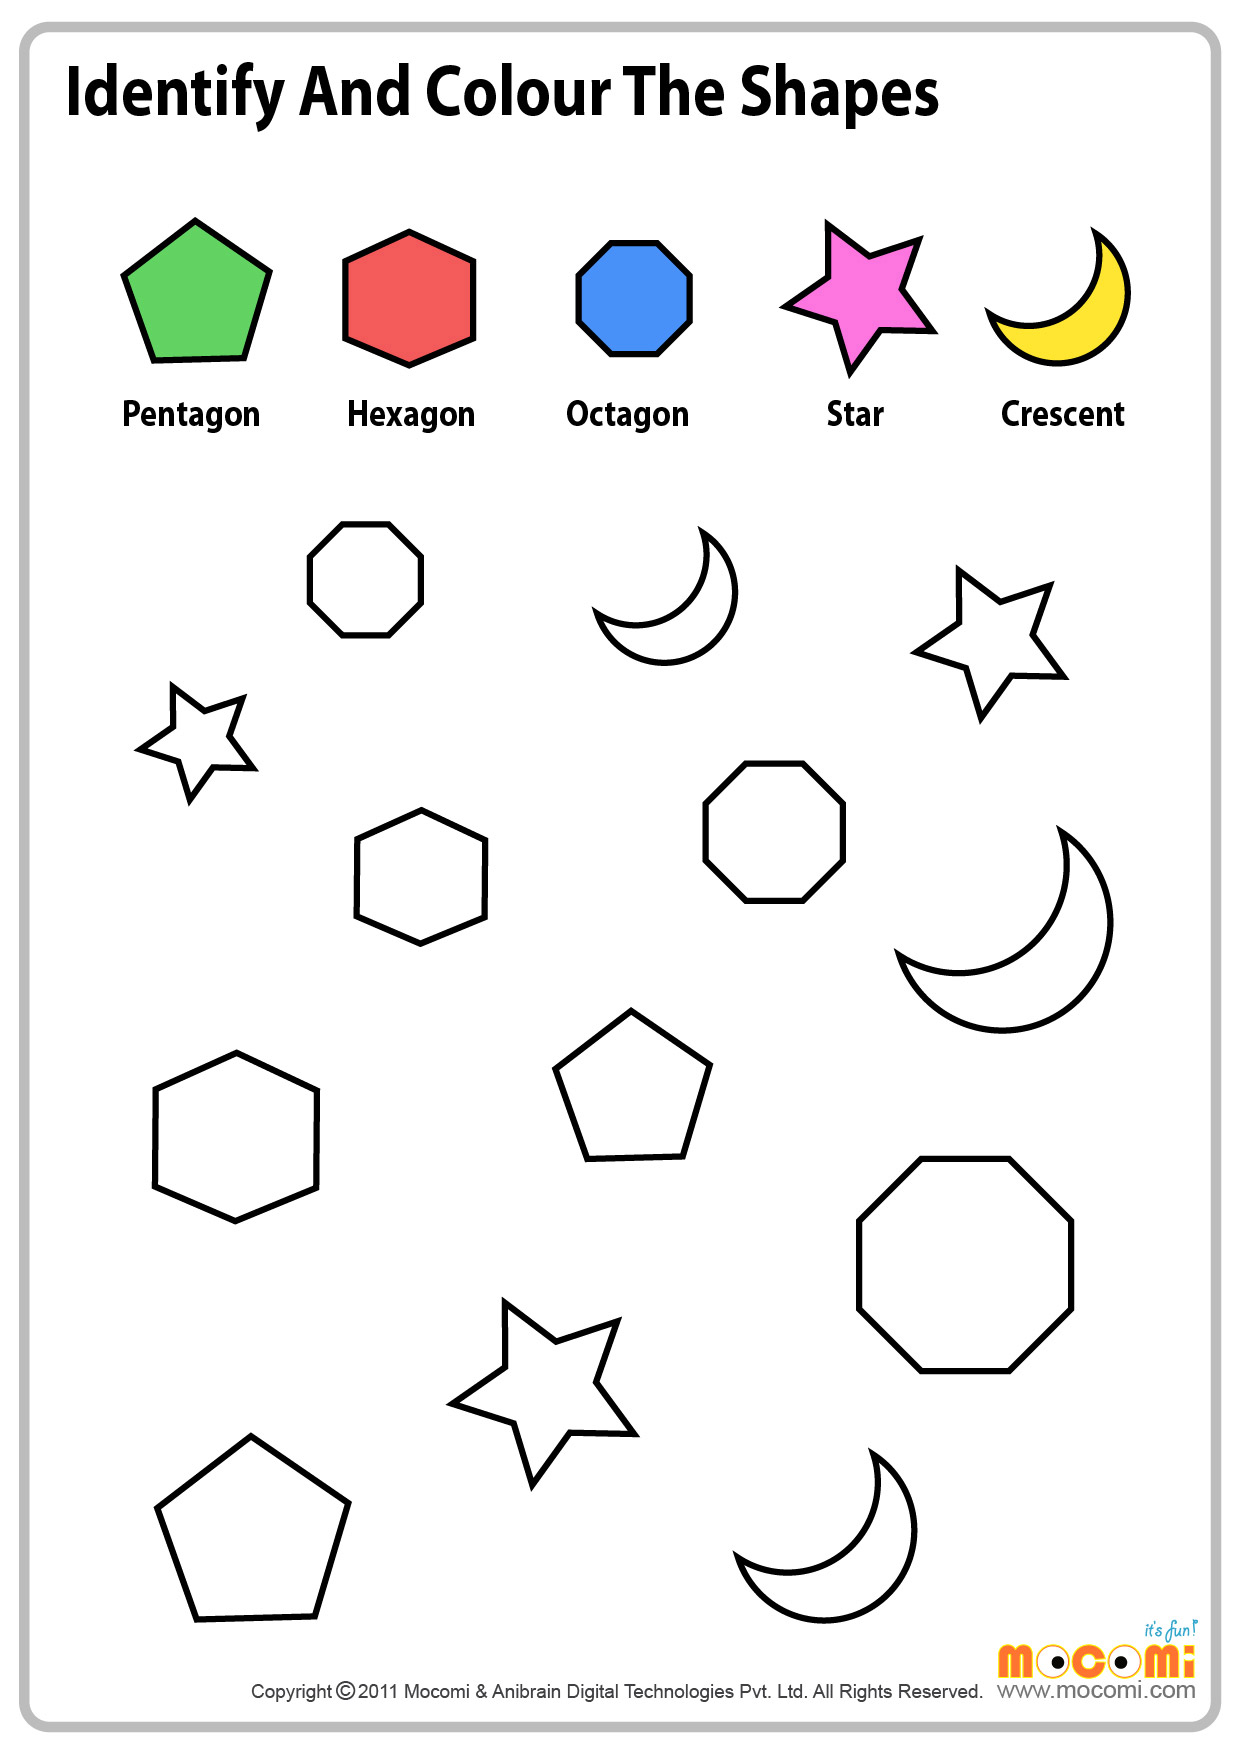 Coloring shapes worksheet - Colour Similar Shapes